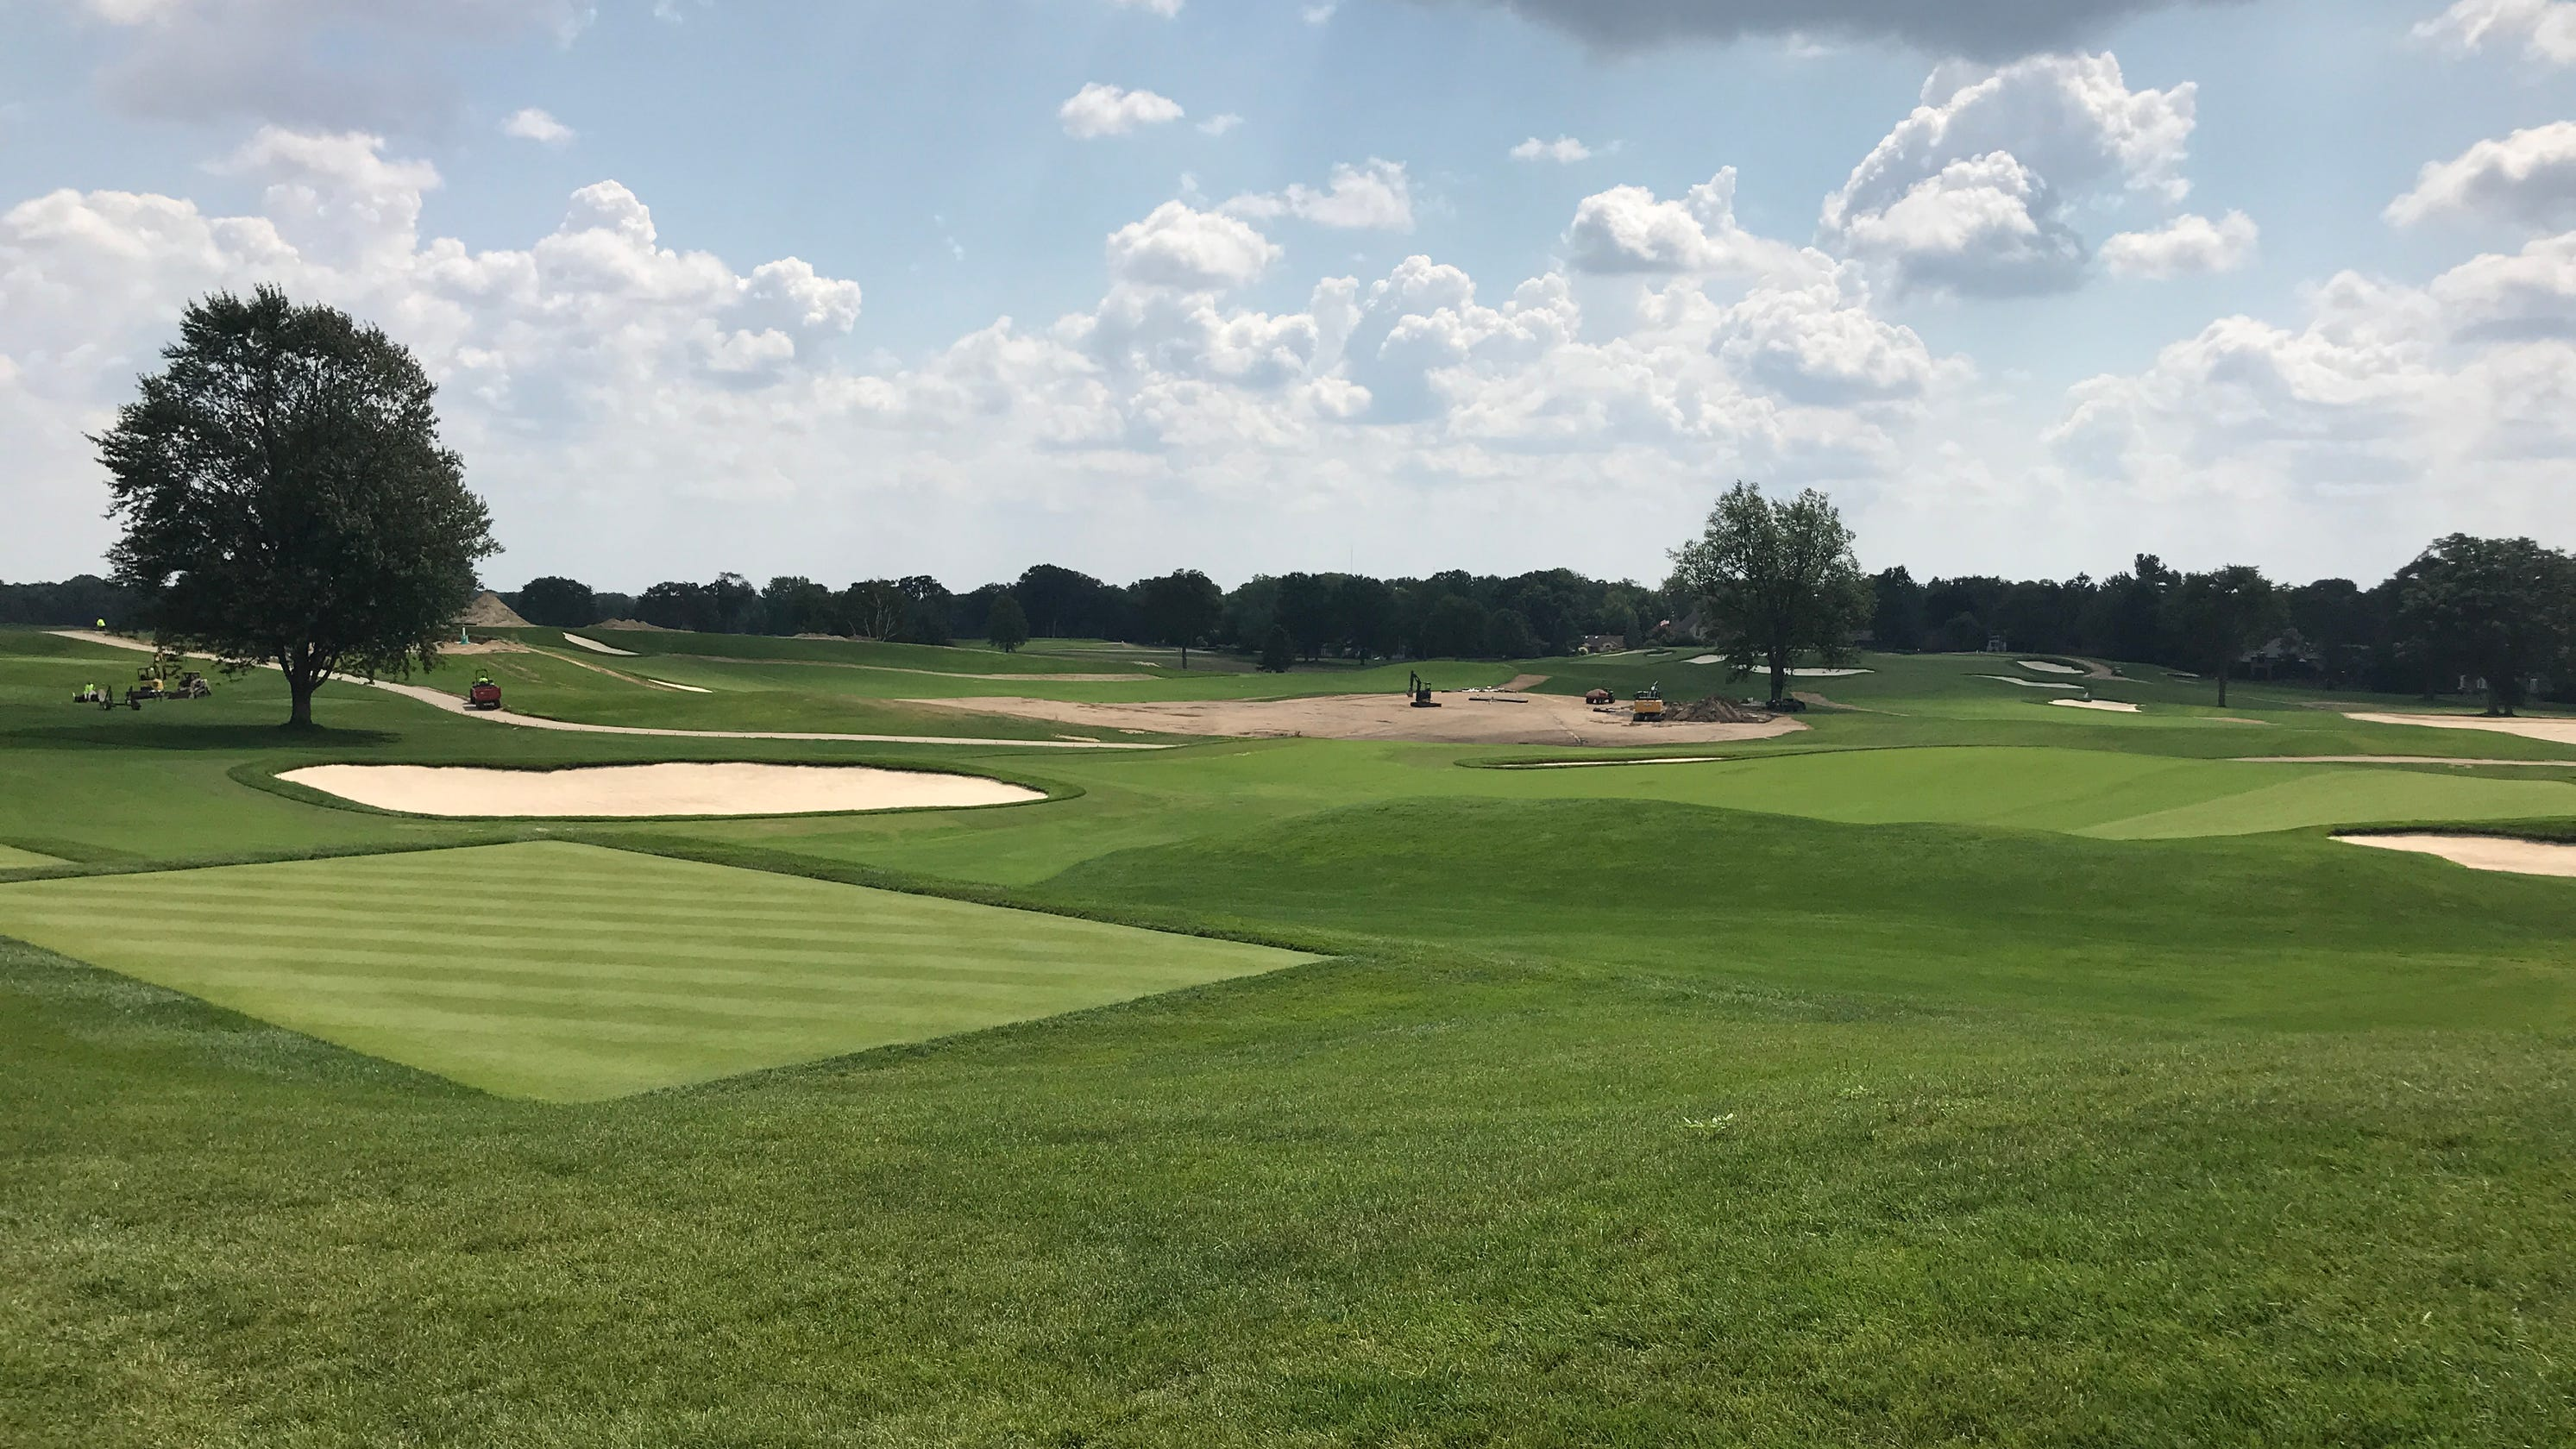 Renowned Oakland Hills golf course ready to host another U.S. Open with improved greens